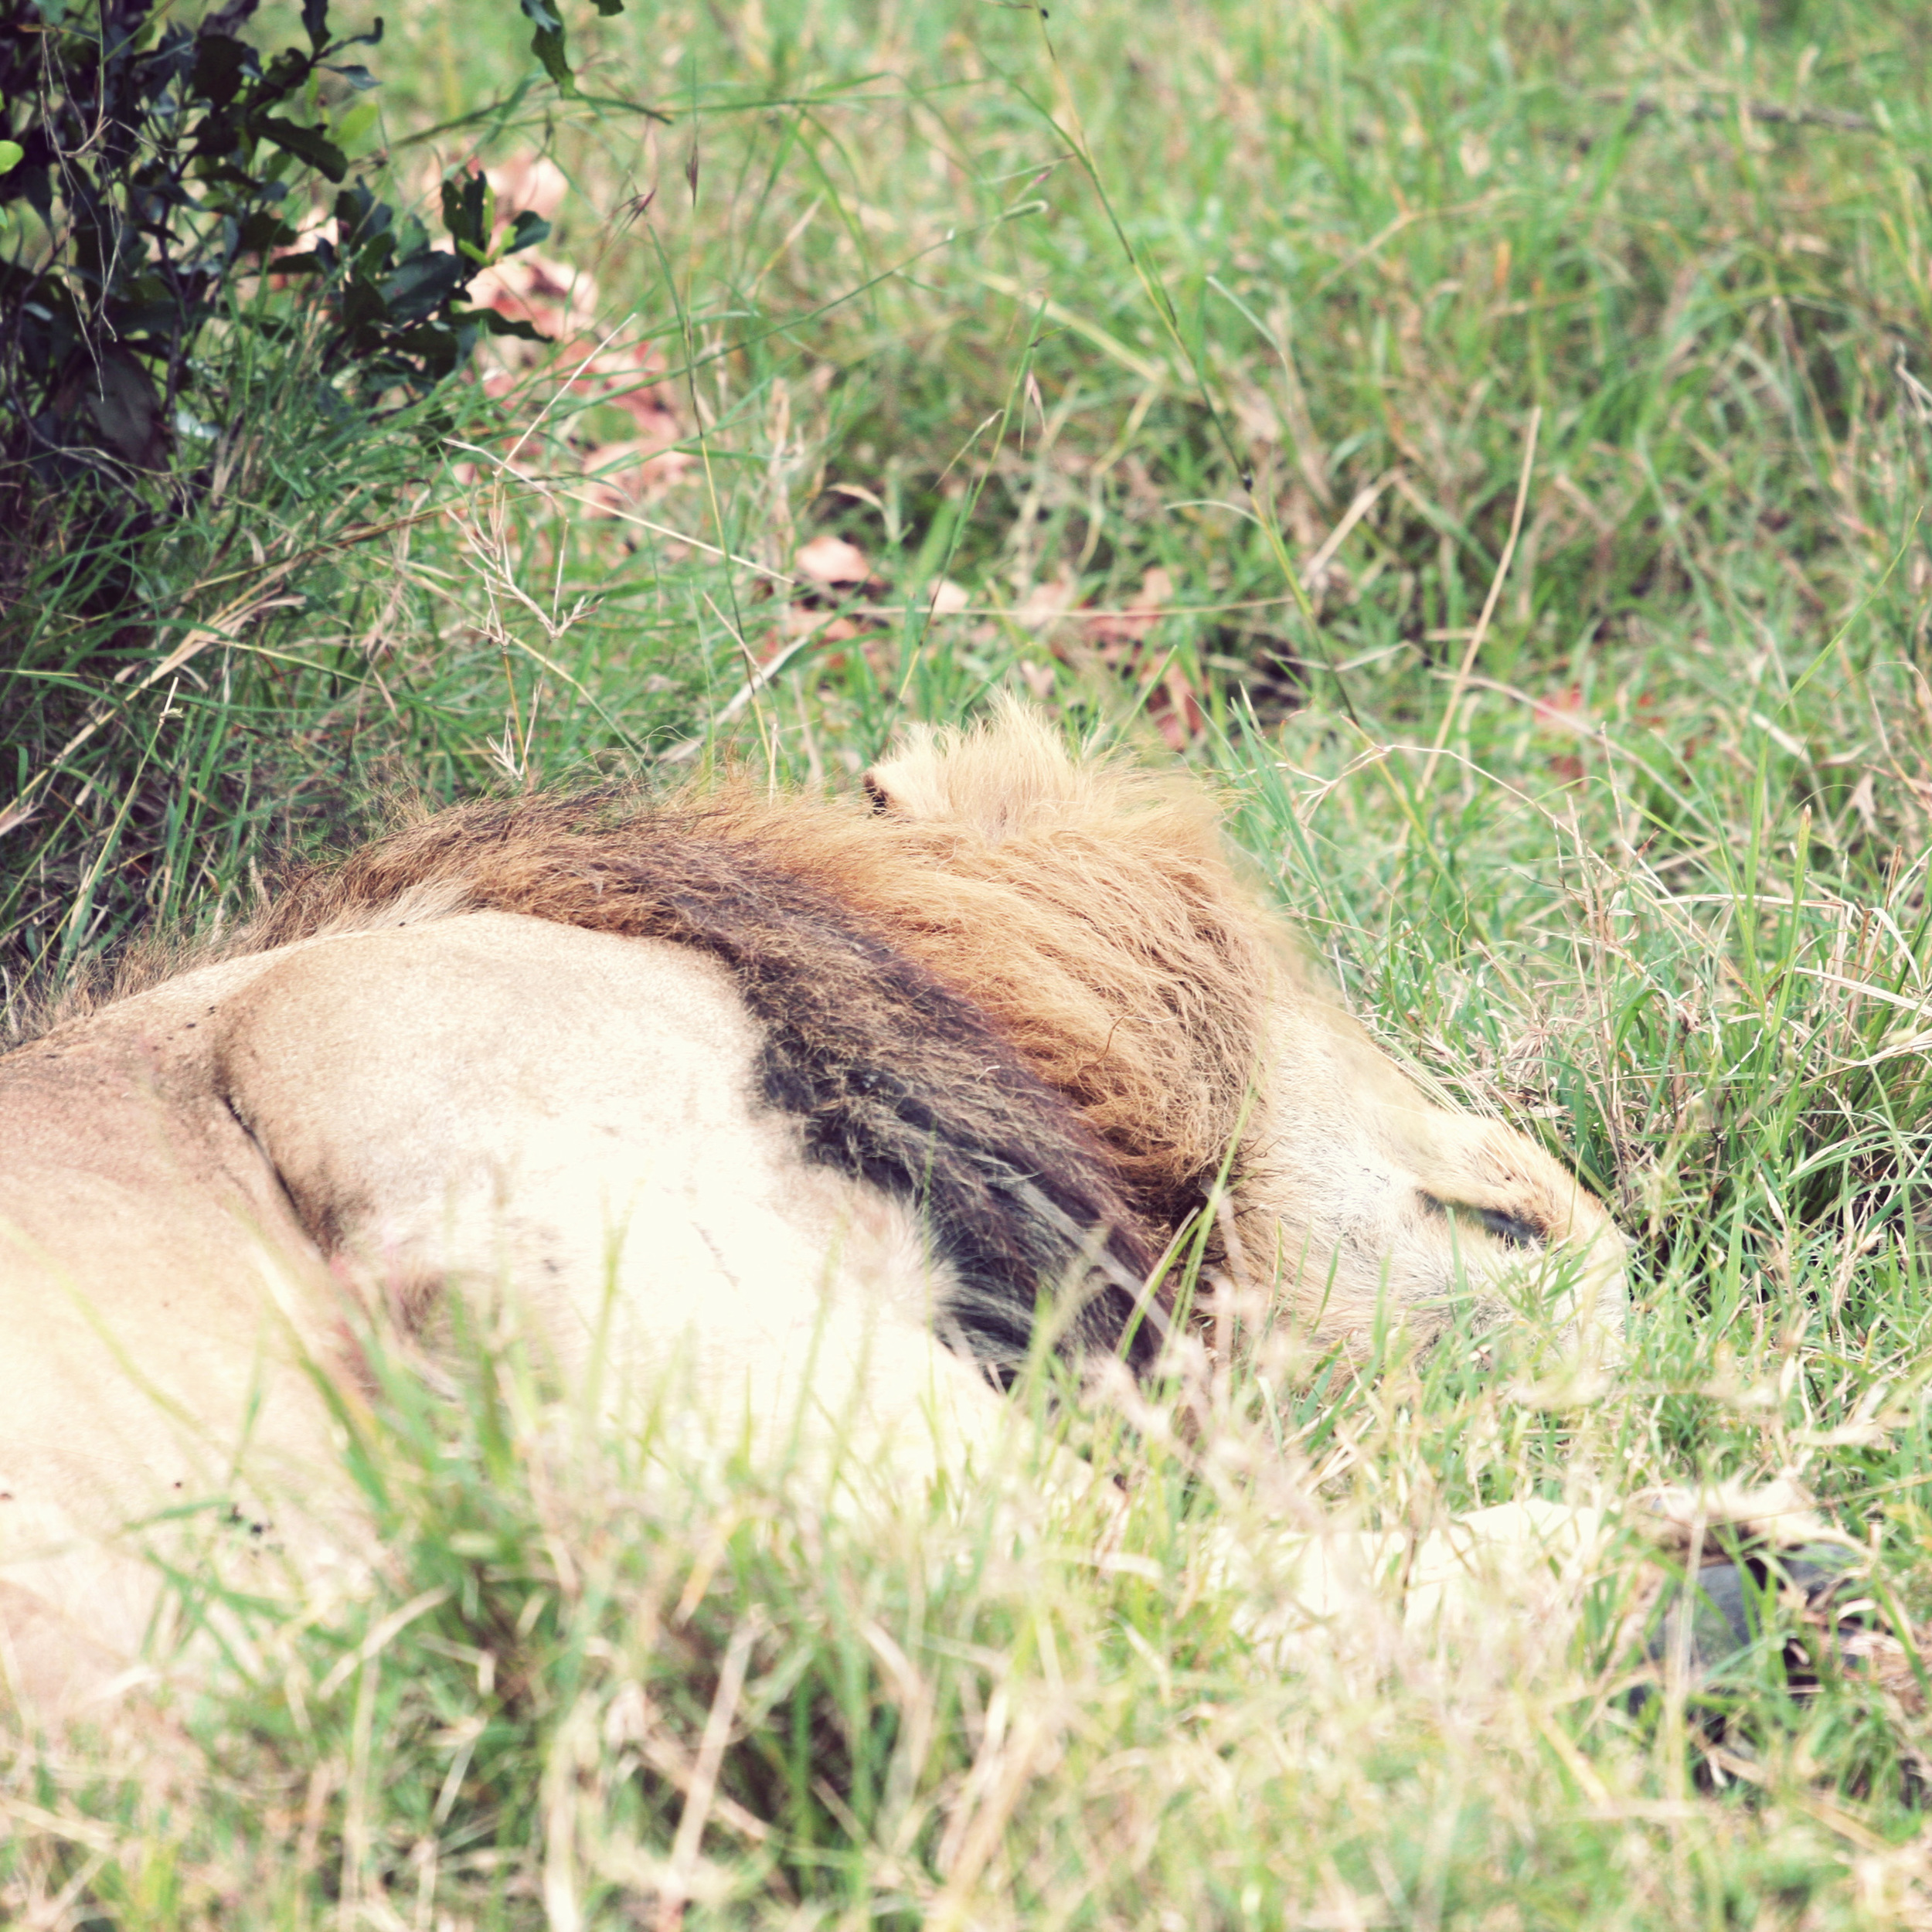 Sleeping male lion - they were all hiding in the grass and we didn't want to get closer and disturb them.